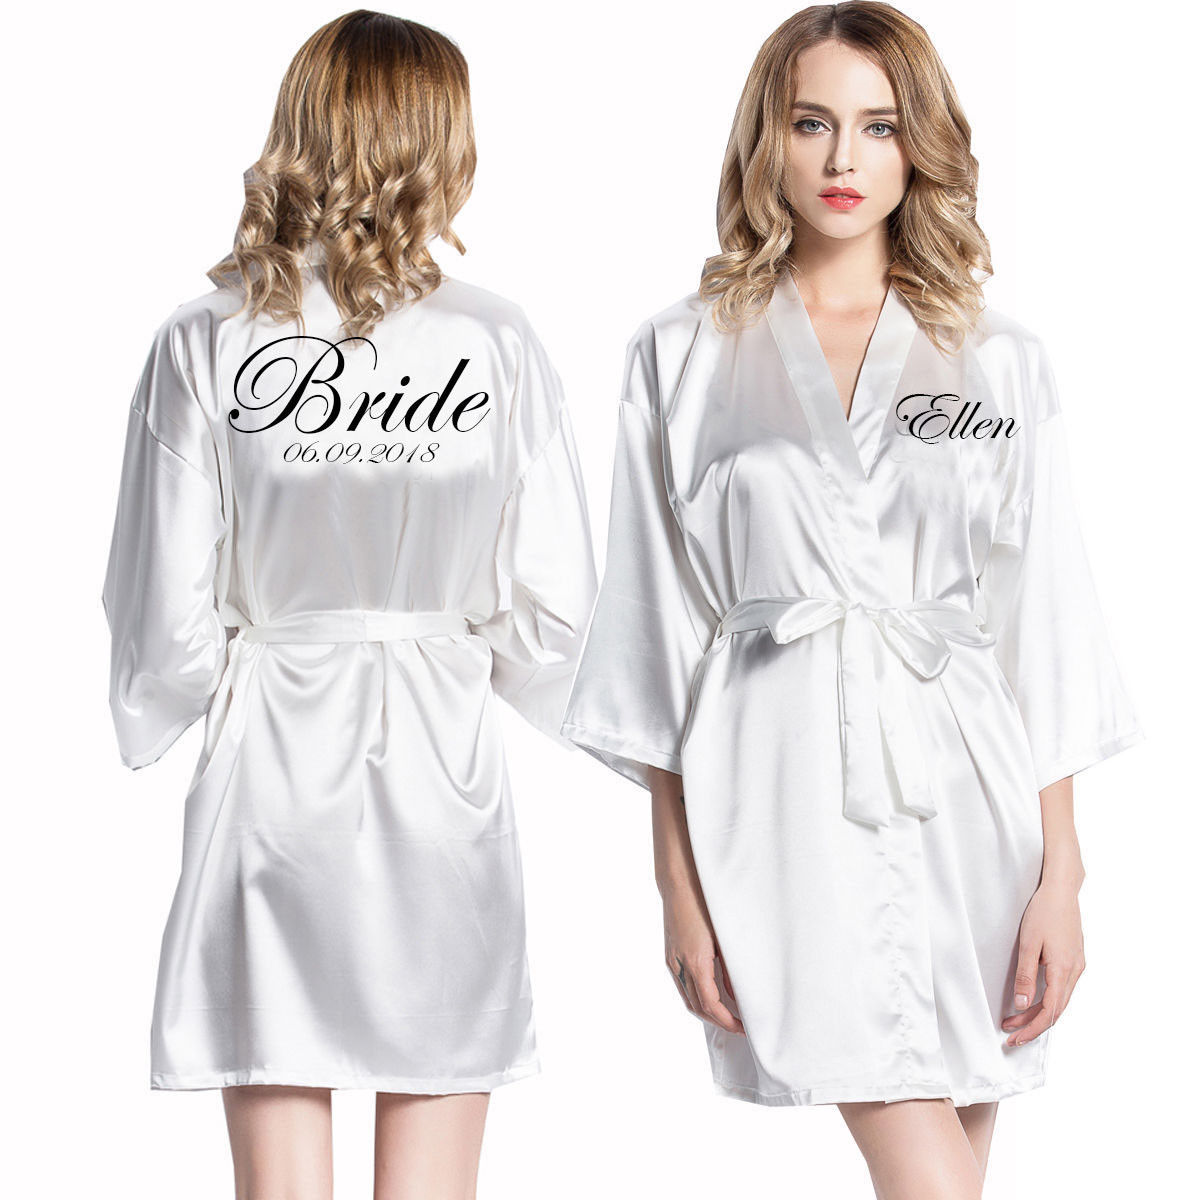 Wedding Dressing Gowns Personalised: Personalized Robes Satin Silk Printed Gown Wedding Bride